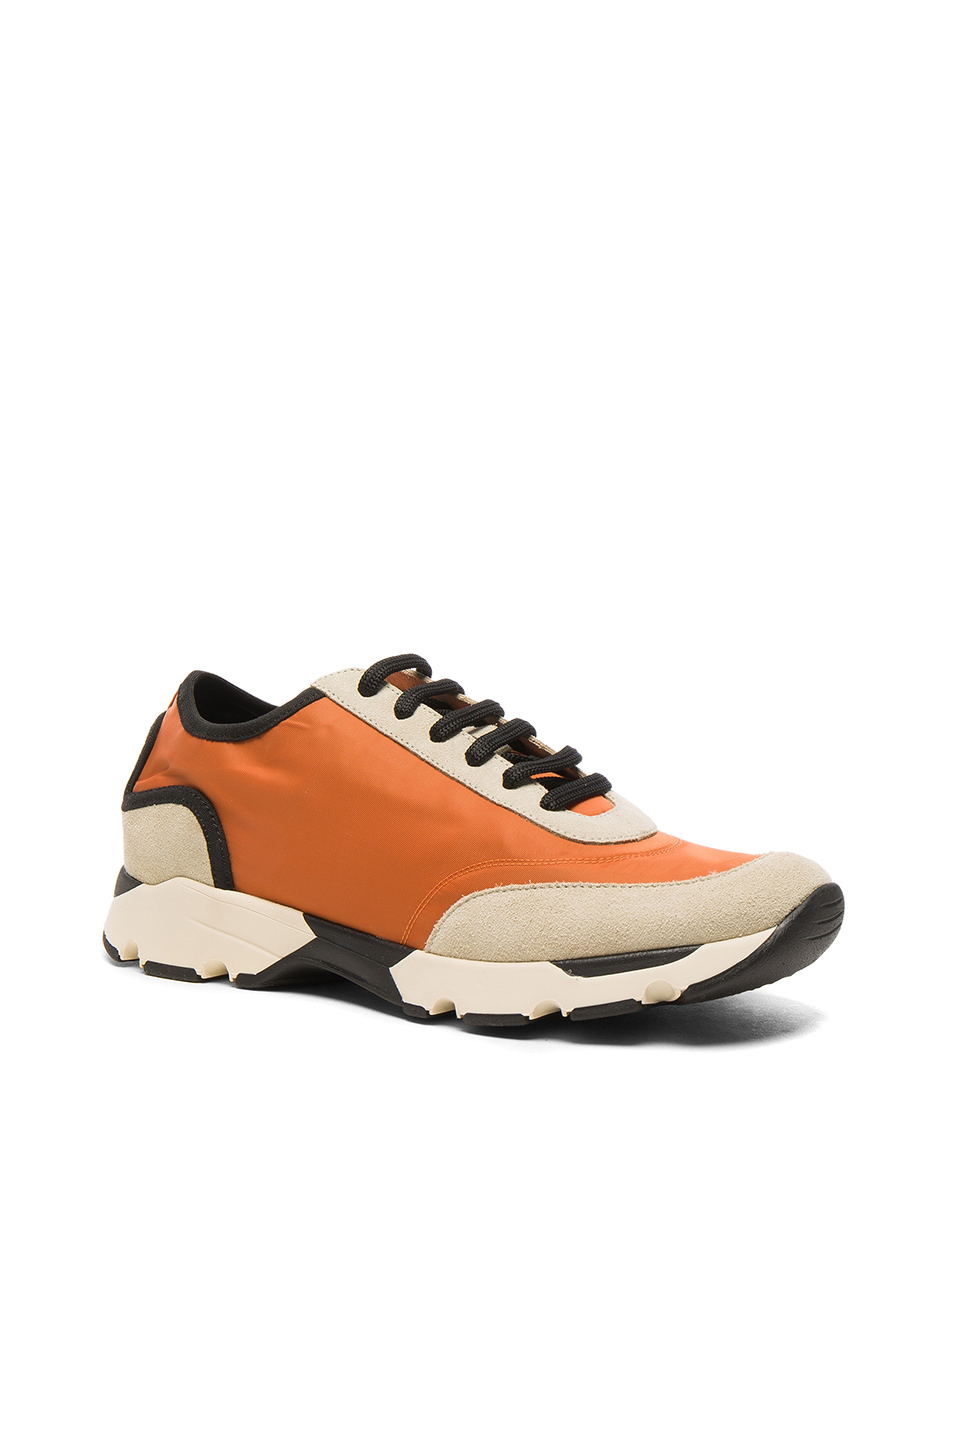 Marni Sneakers in Orange